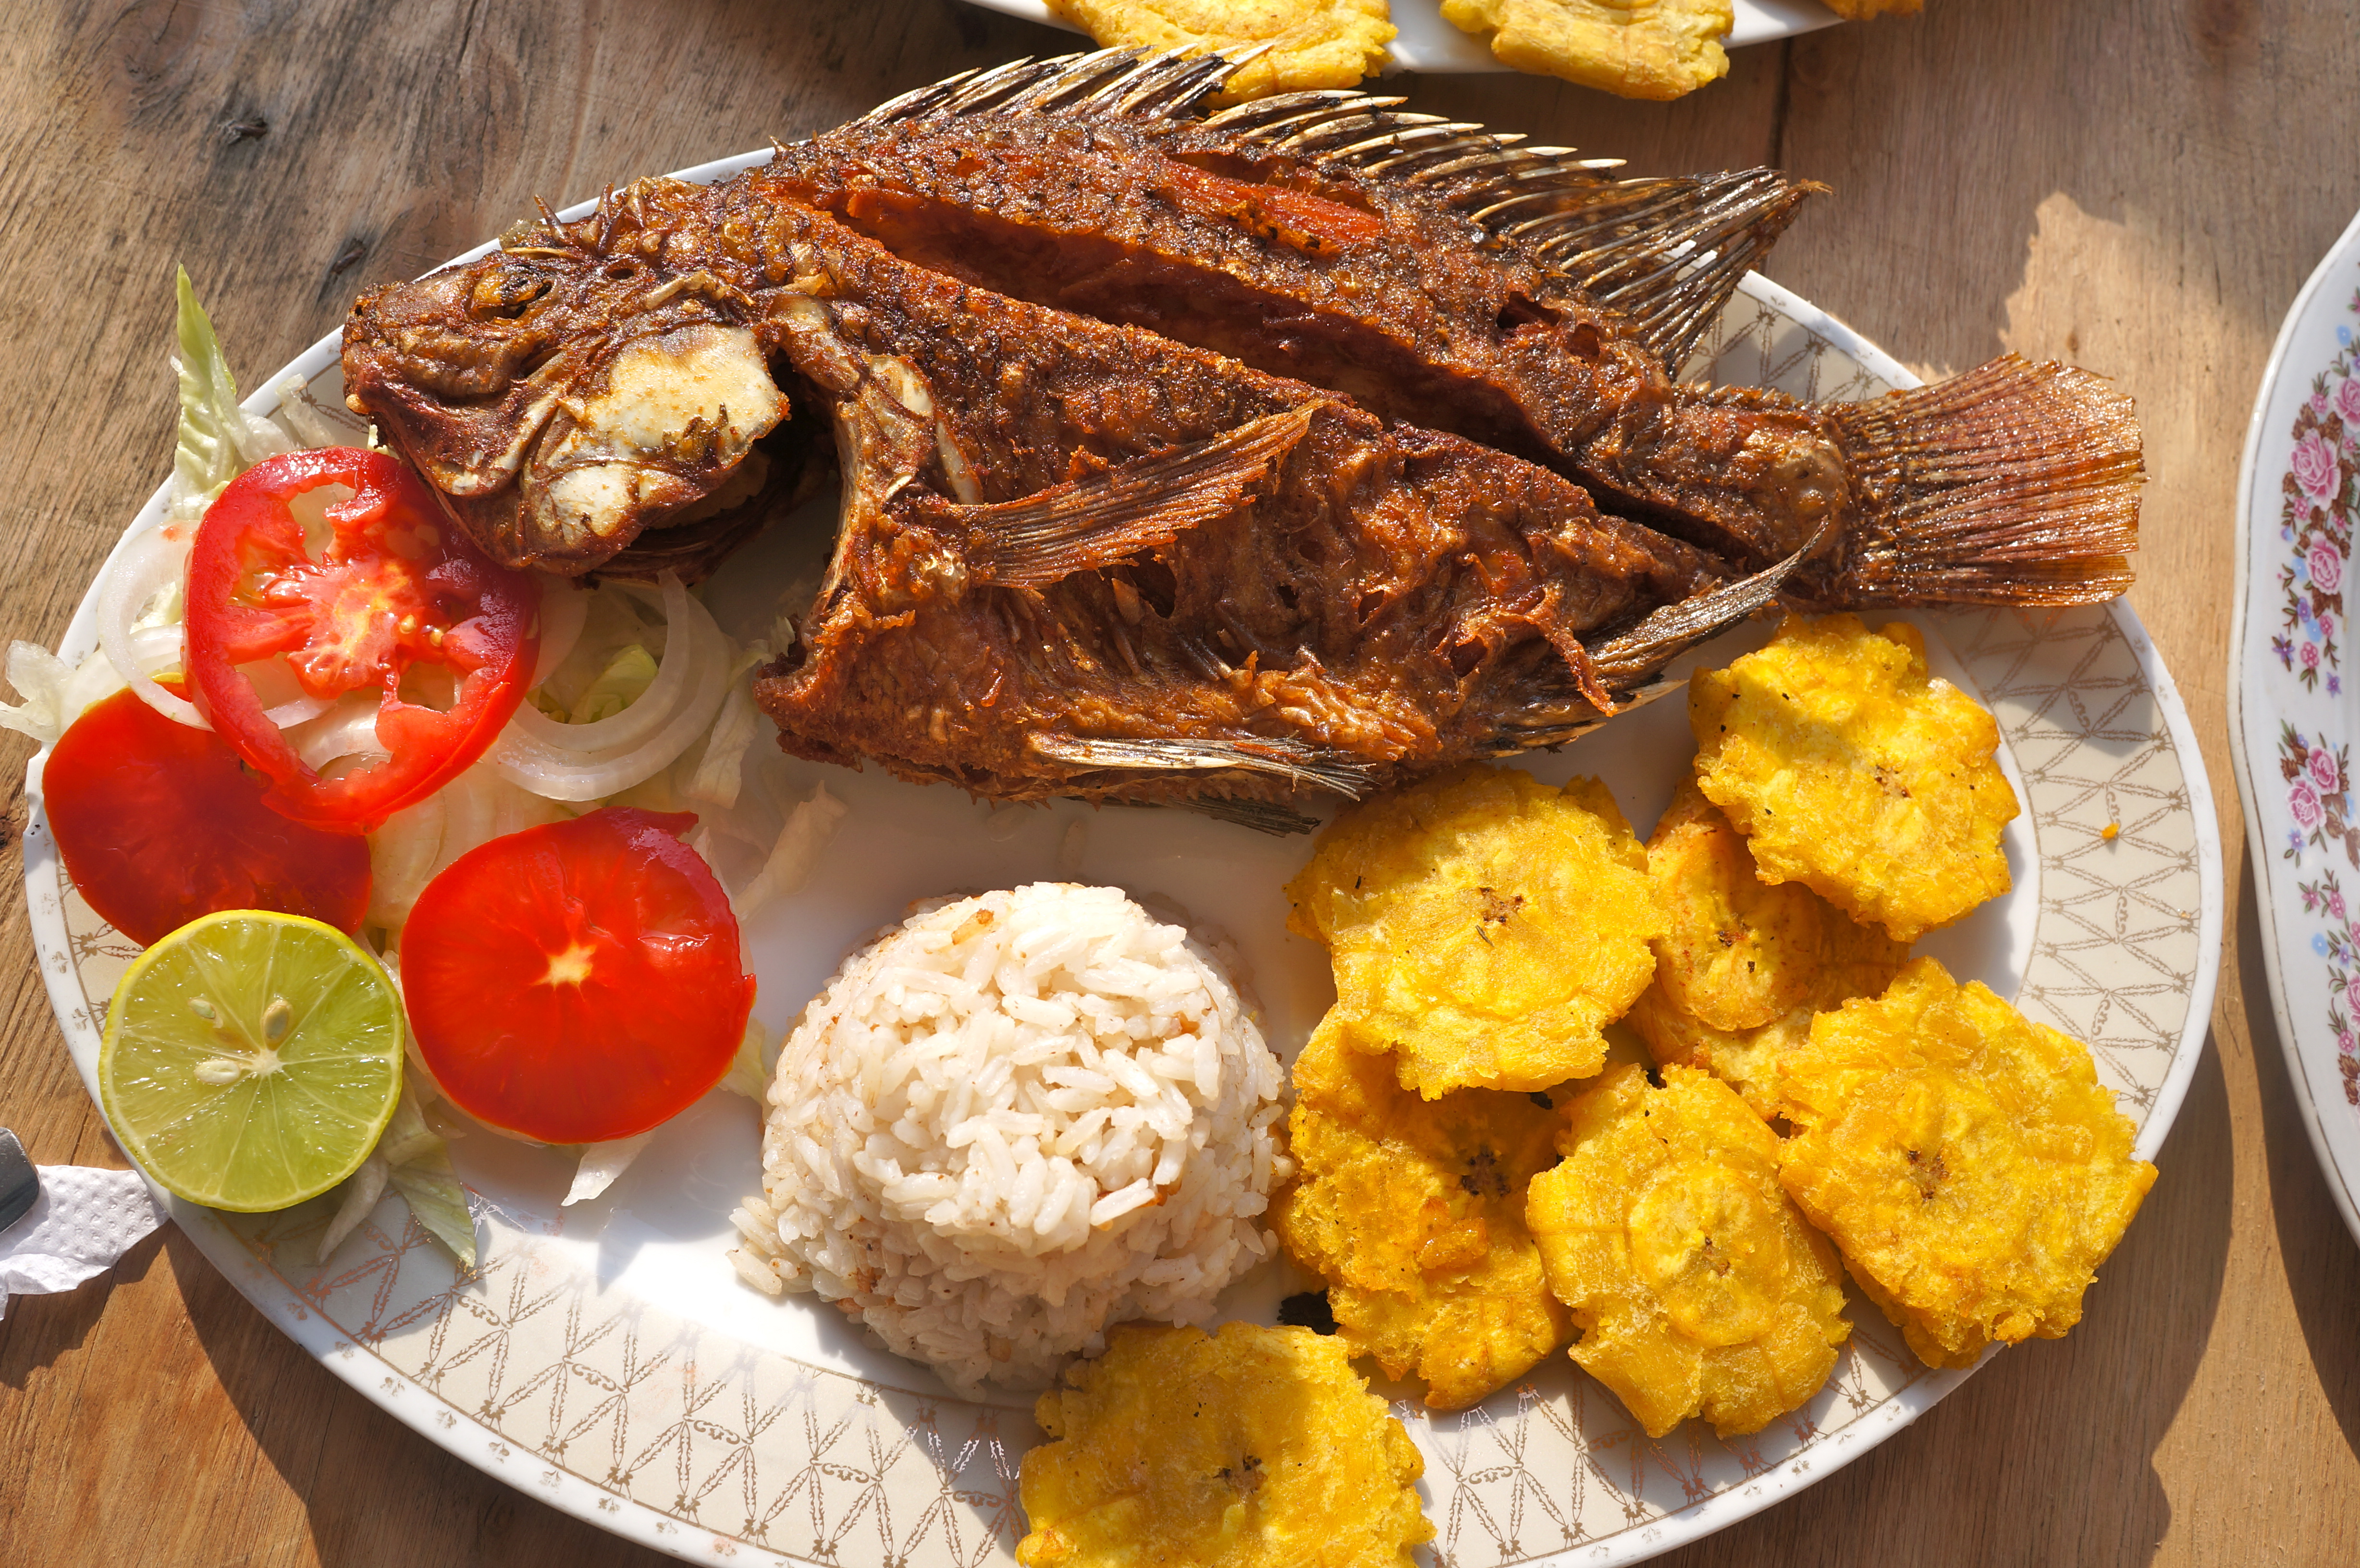 Photo taken in La Boquilla, Colombia. A traditional dish of fried red snapper, plantains and coconut rice.